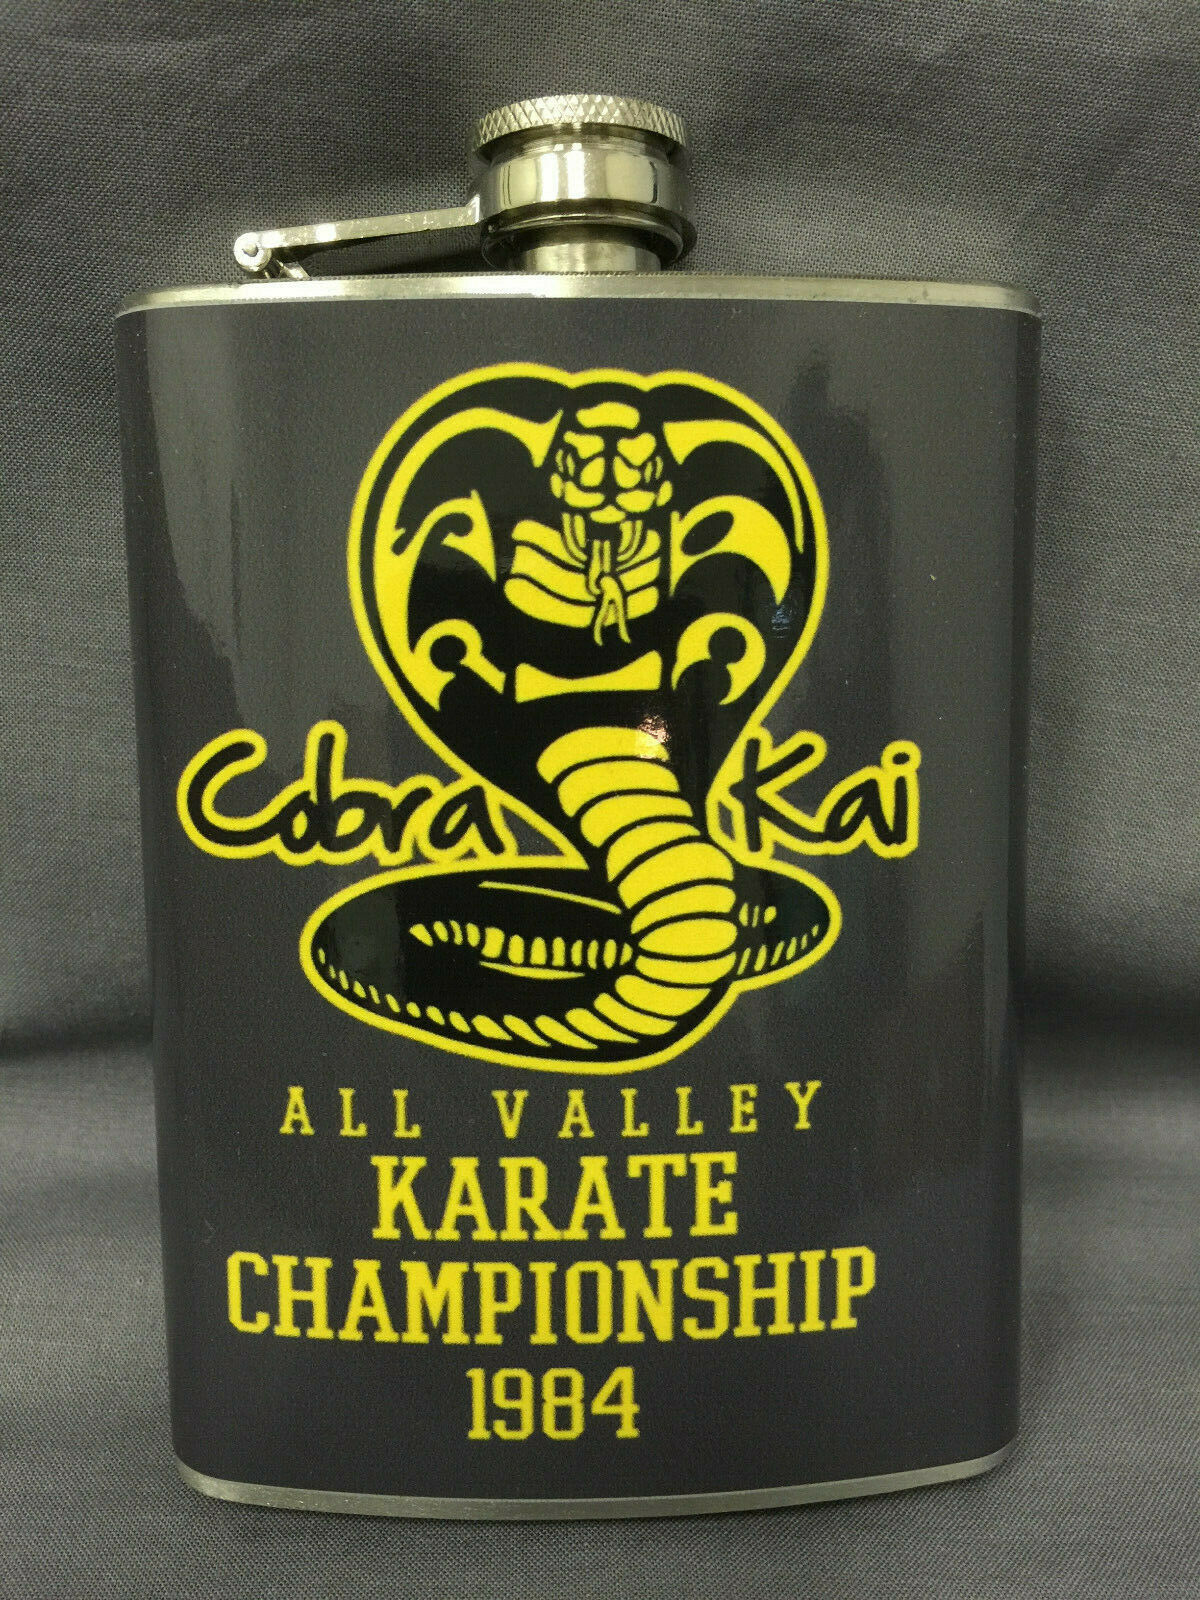 Cobra Kai Championship 1984 Flask 8oz Stainless Steel Drinking Clearance item